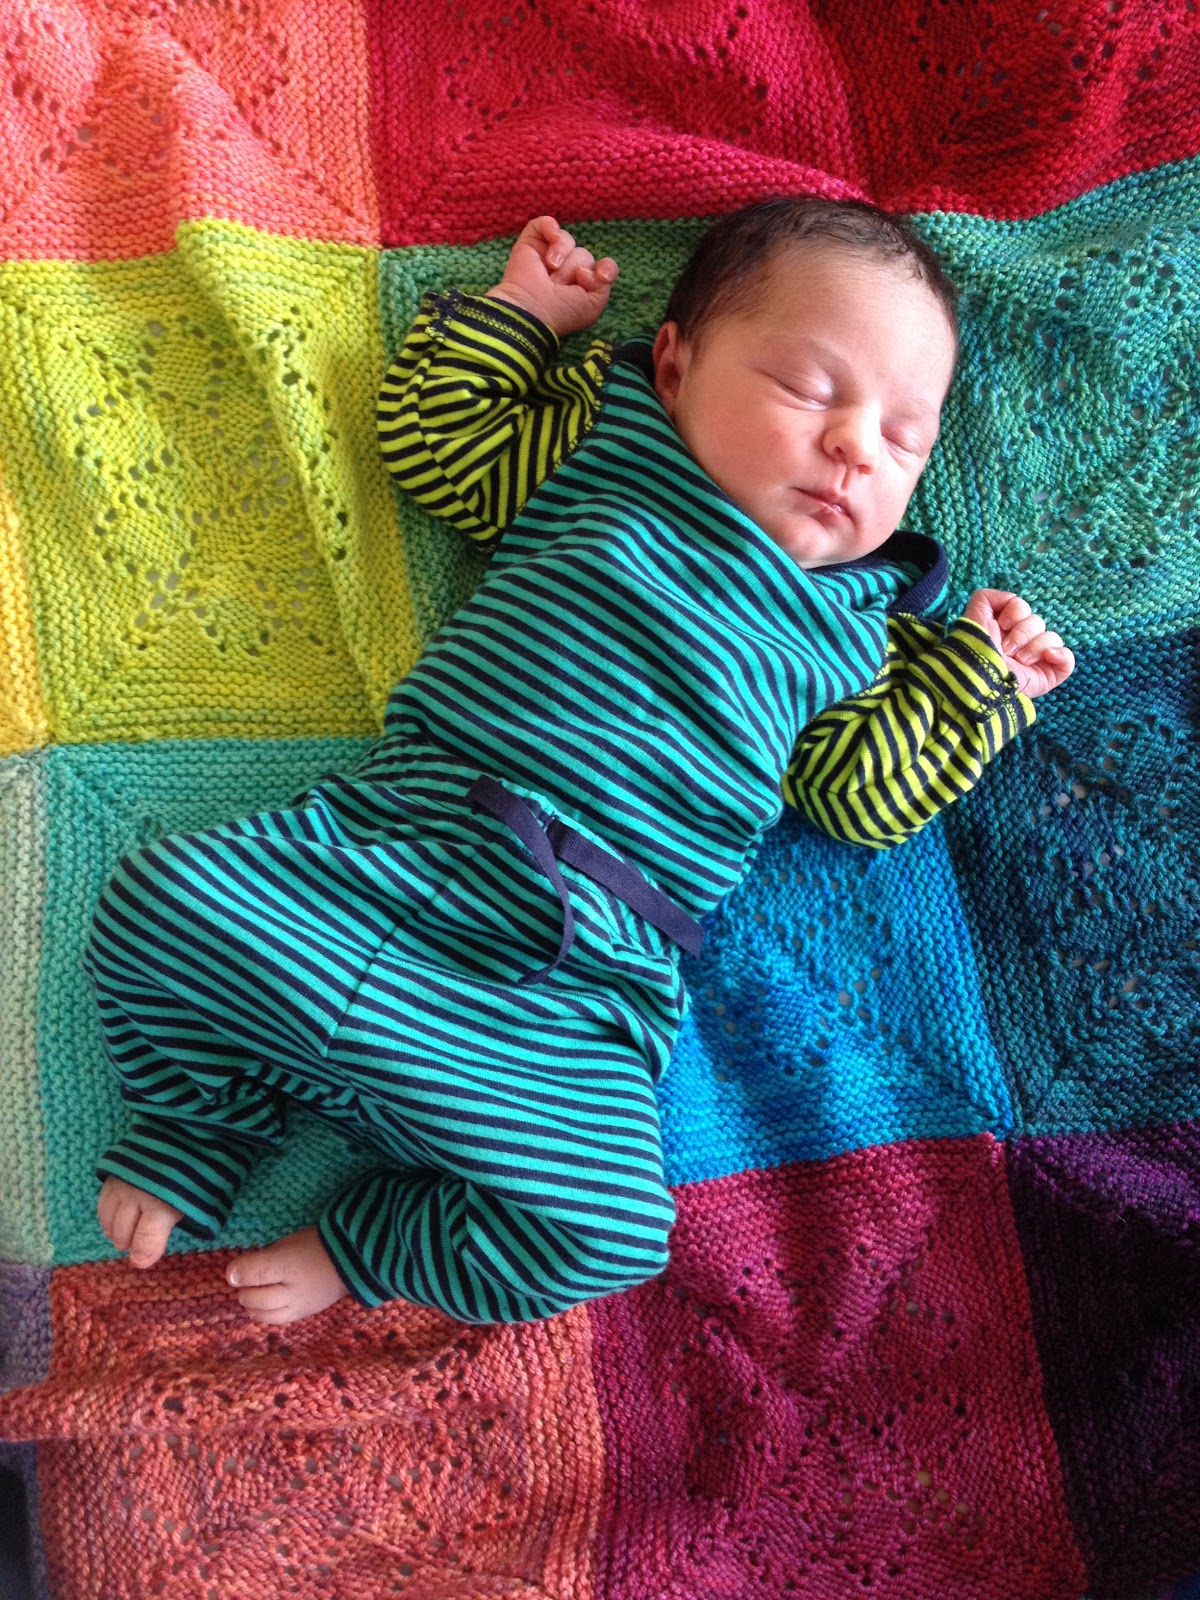 A little baby bodhi in a dark blue and turquoise tracksuit that is a little too big.  She lay on her back on her hand-knitted blanket in a rainbow of squares.